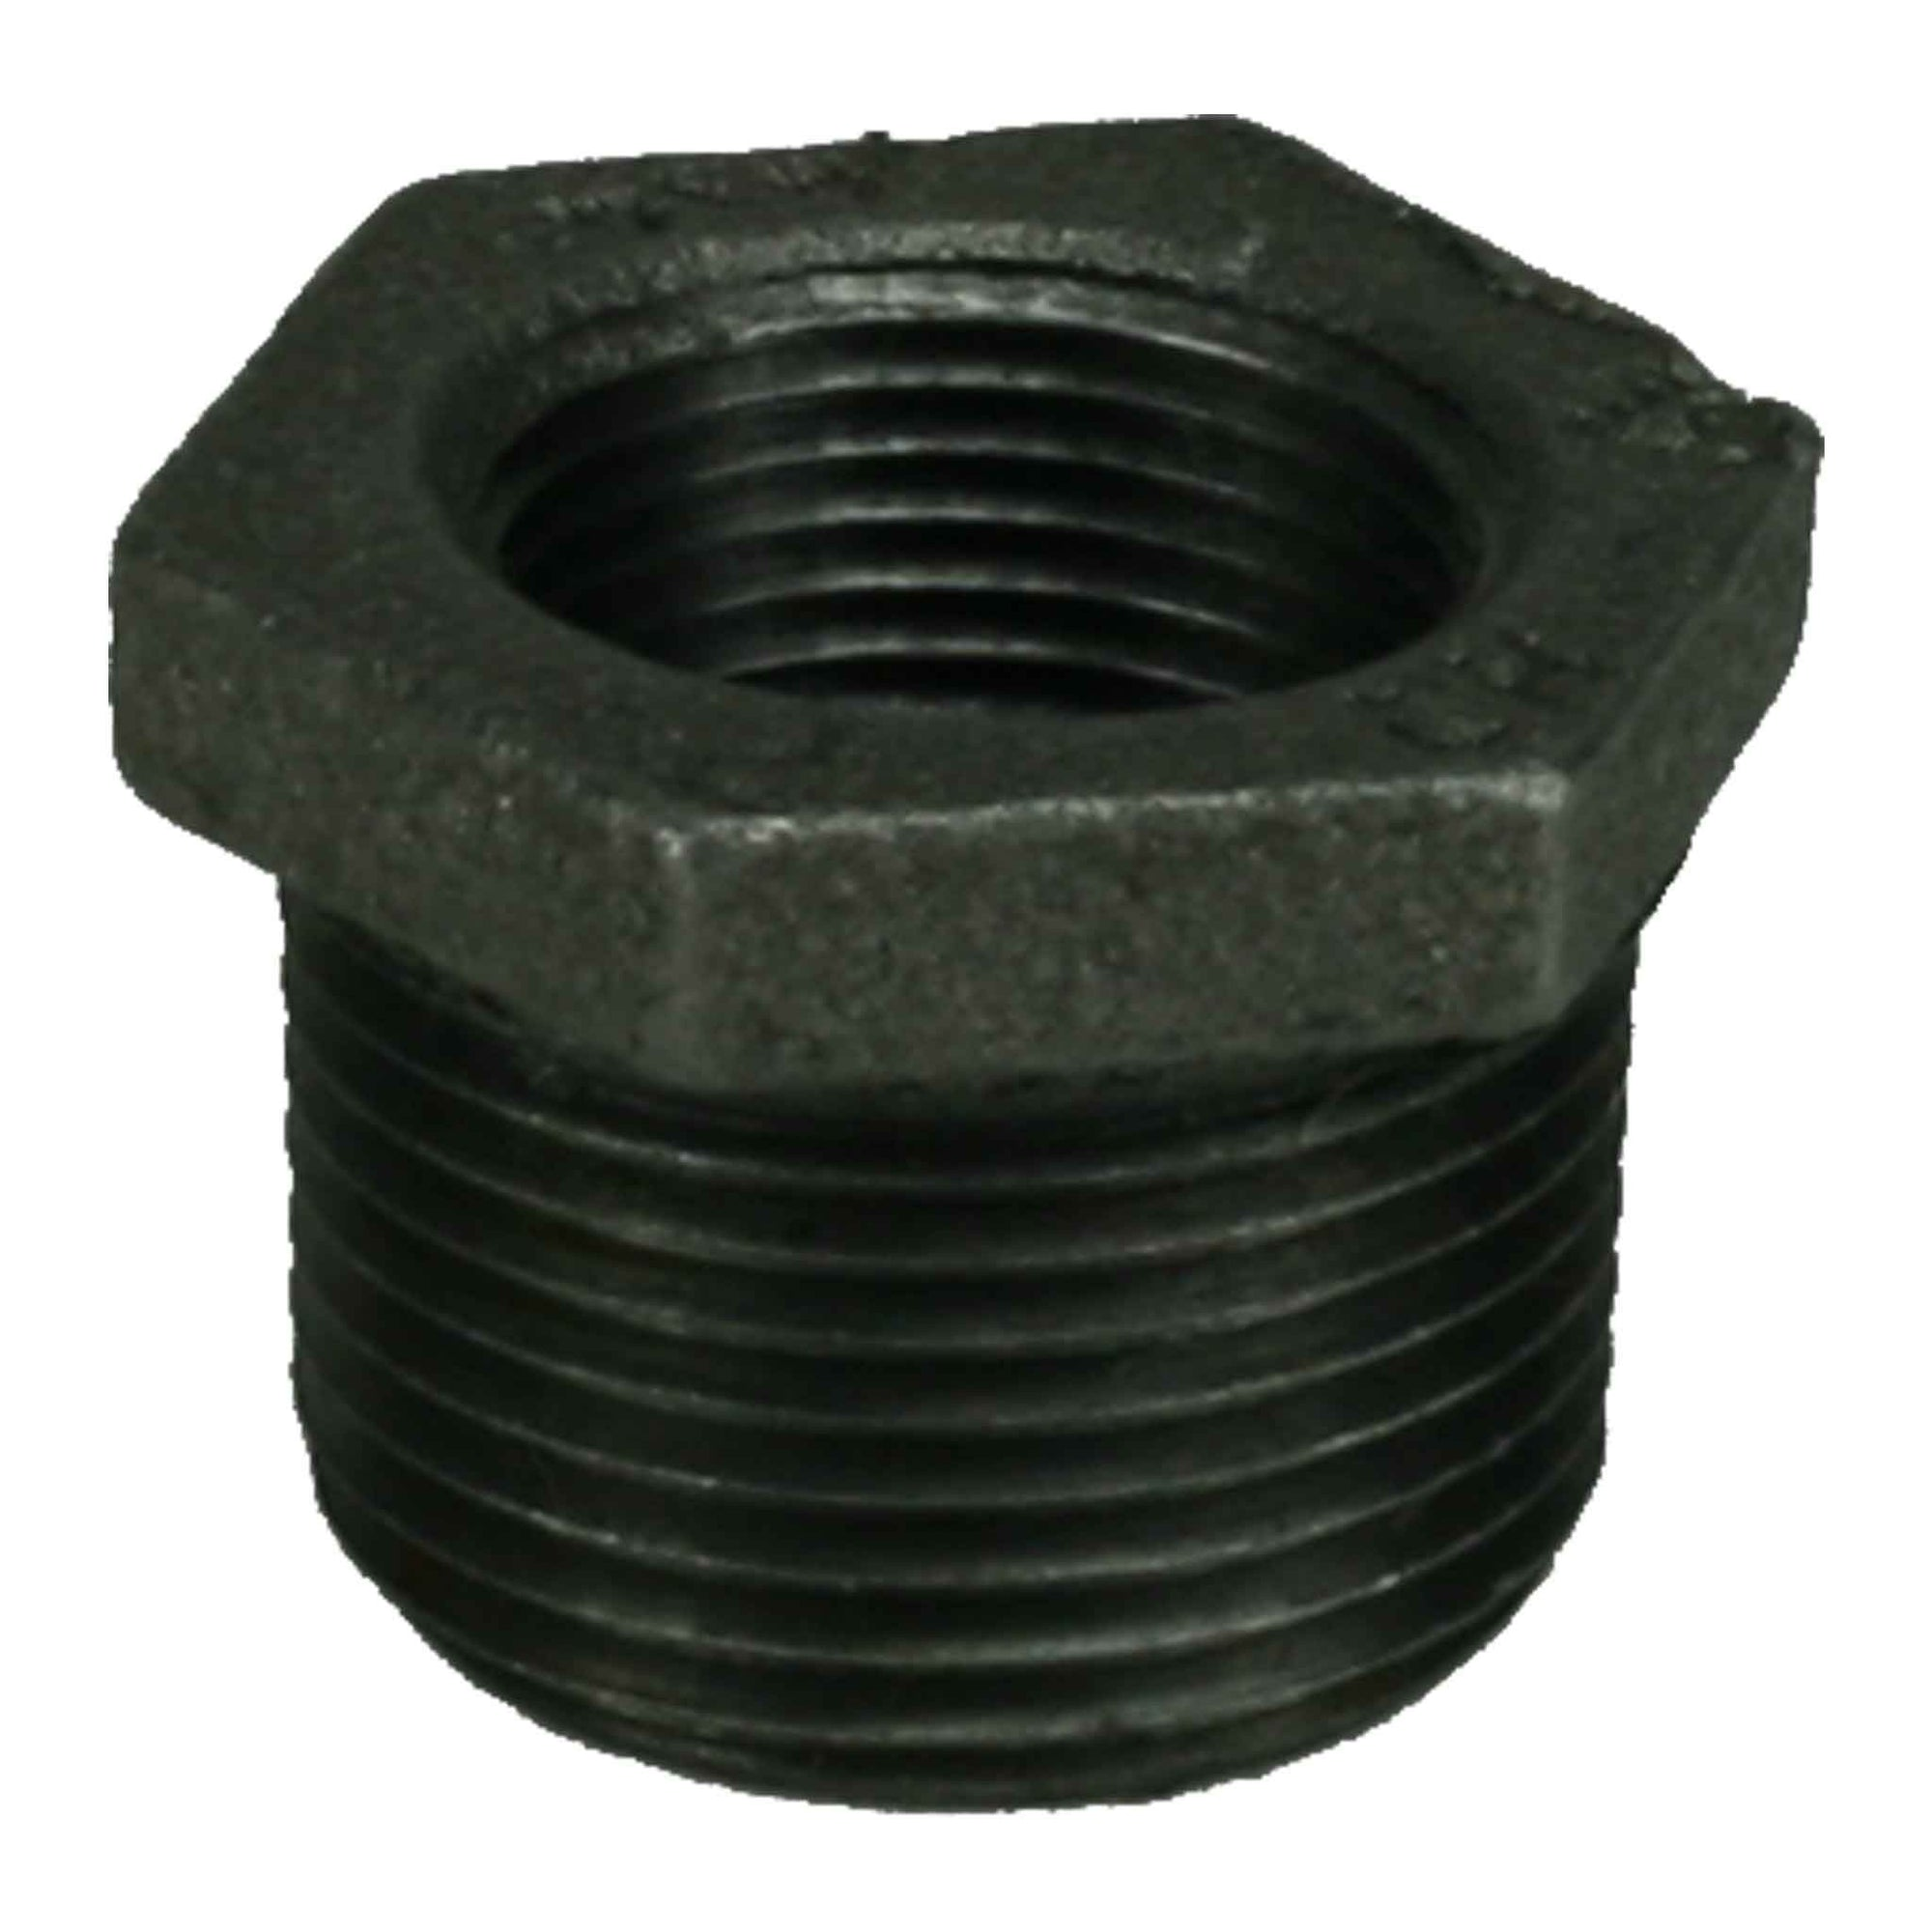 "1"" x 3/4"" Black Iron Bushing"